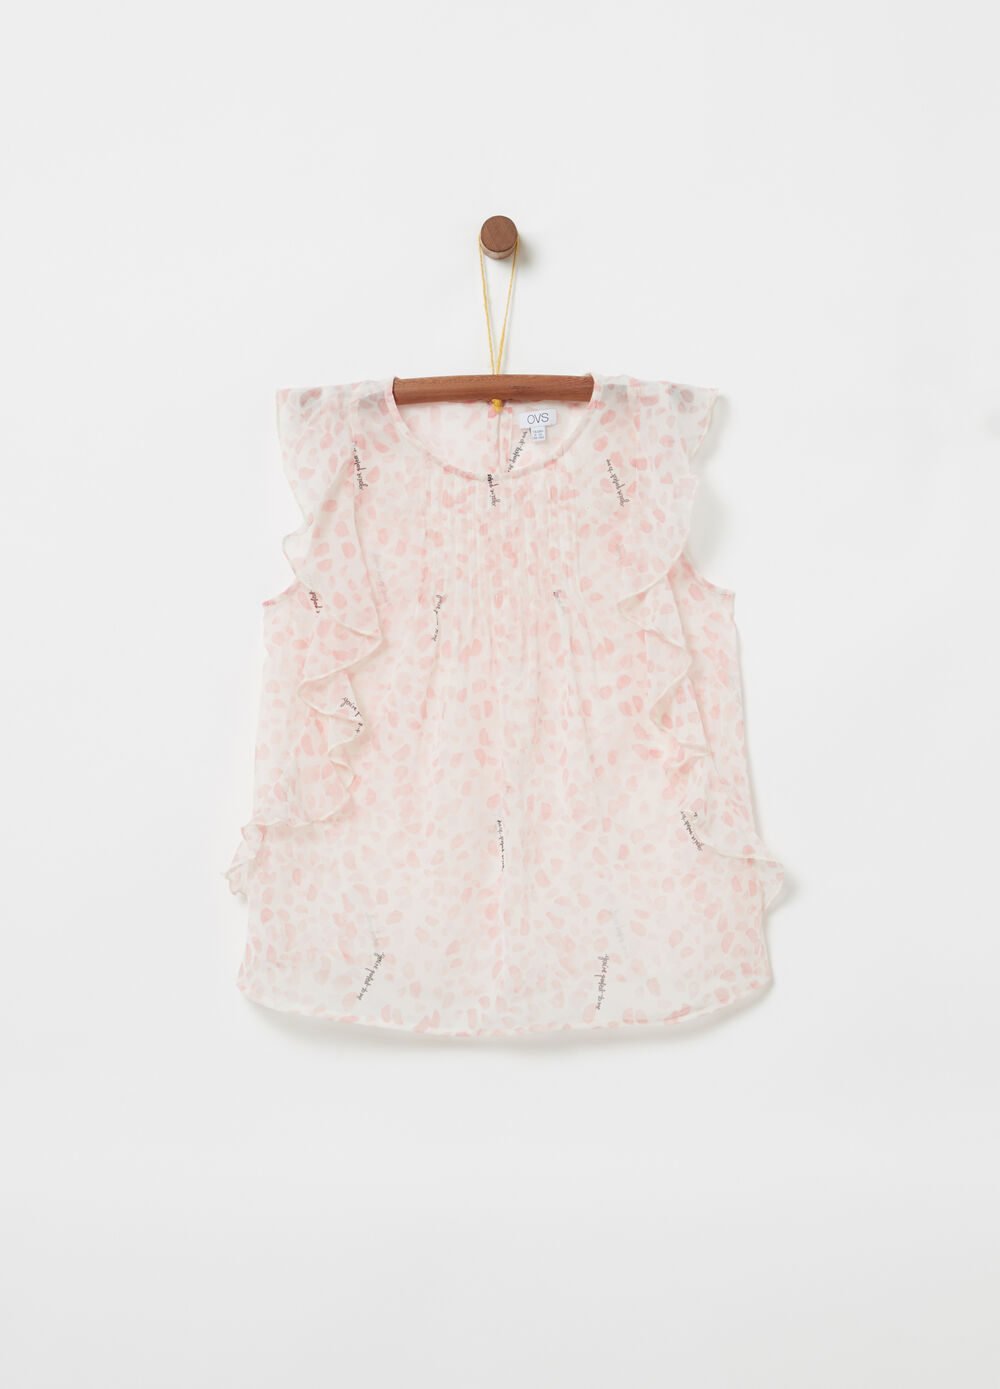 Sleeveless shirt with ruches and print